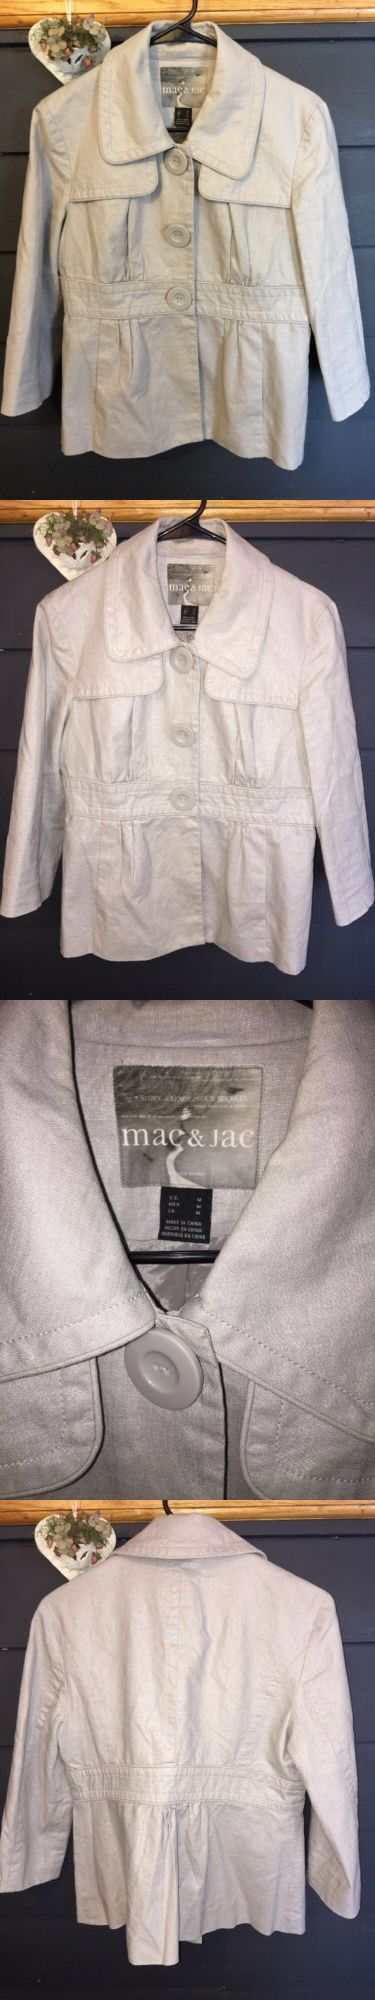 Women Coats And Jackets: Mac And Jac Womens Sz M Metallic Shimmer Gray Sliver Jacket Coat -> BUY IT NOW ONLY: $15 on eBay!